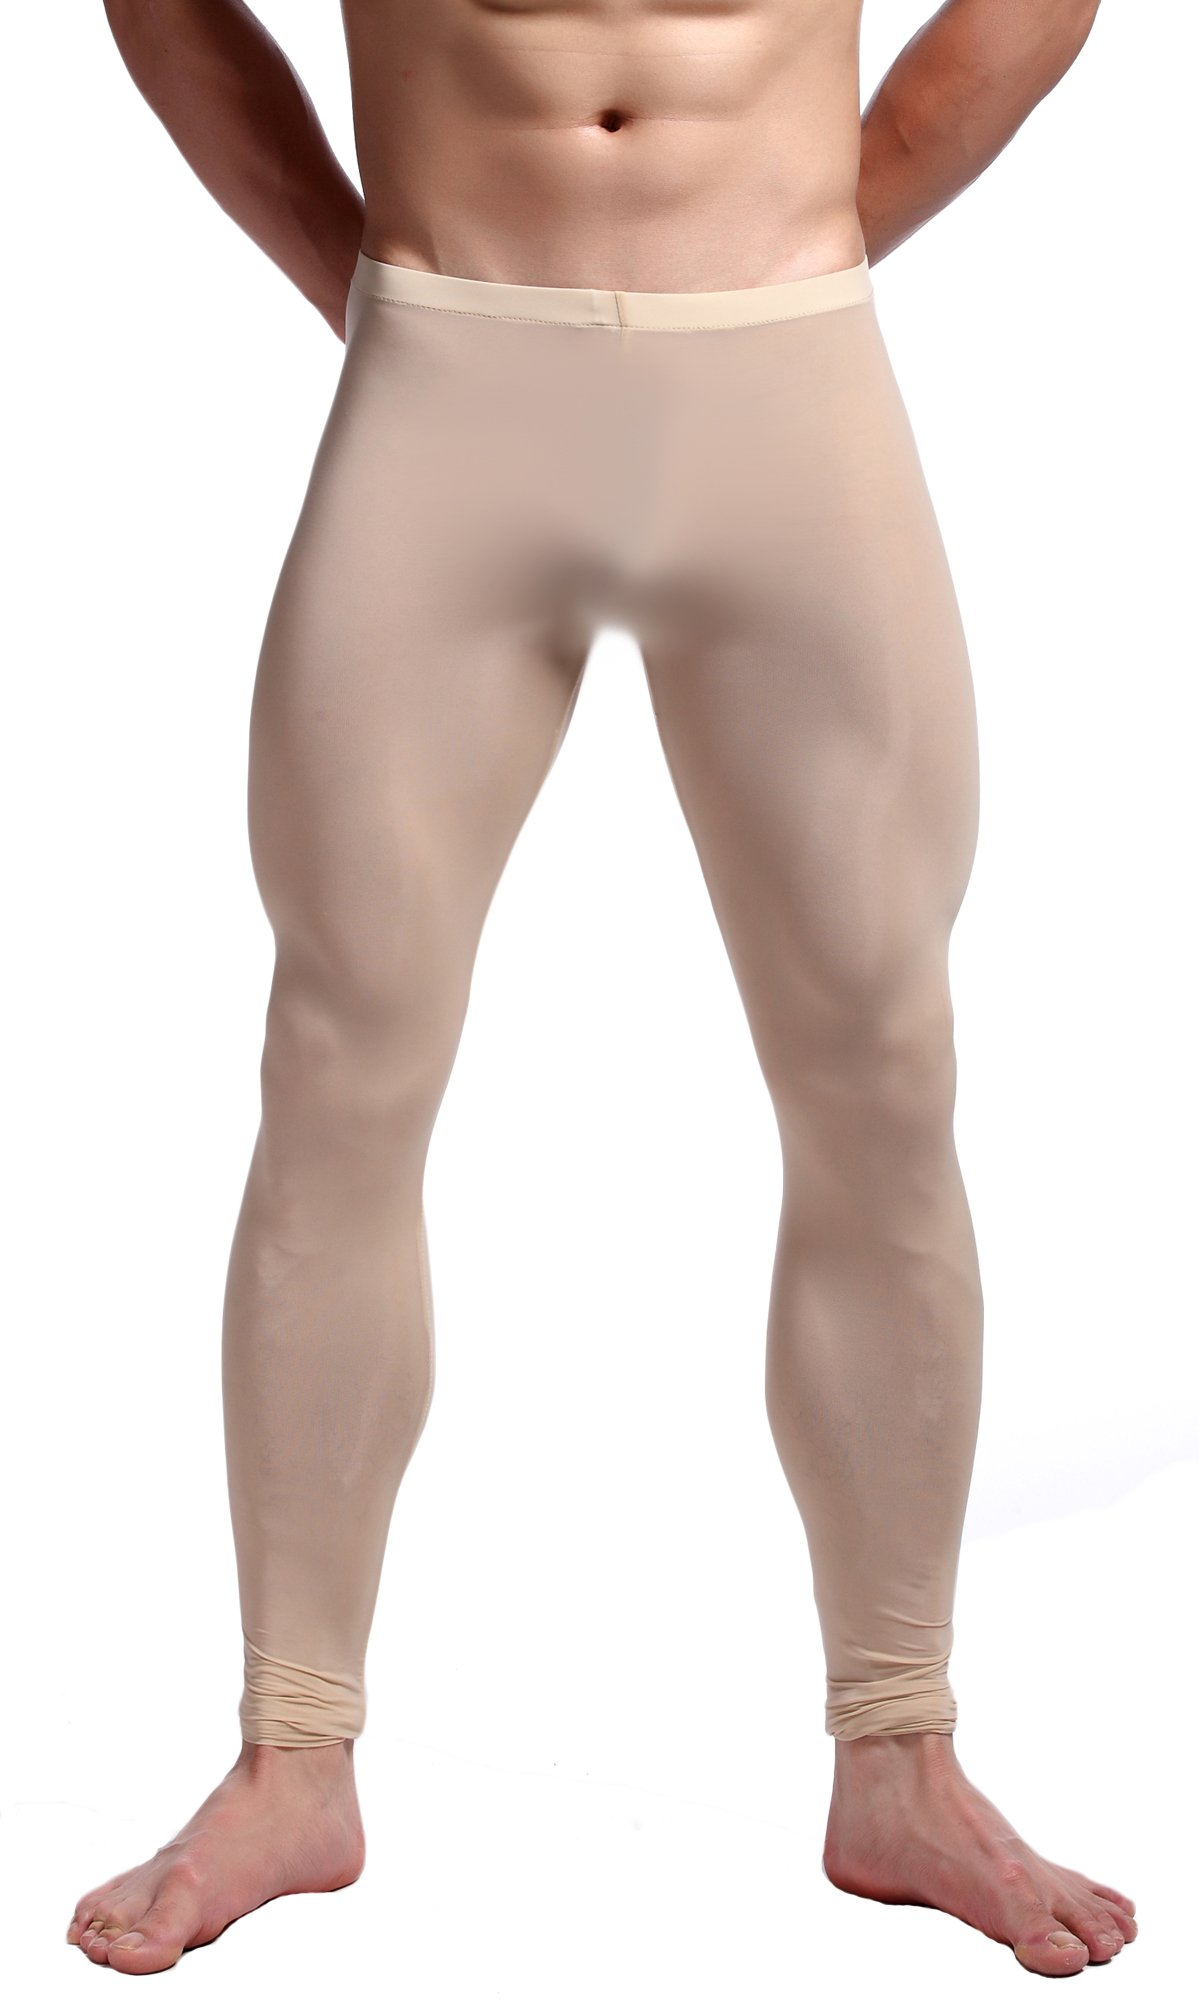 WUAMBO Men's Mesh Long Johns Slim Sexy Legging Tights Begie US Large by WUAMBO